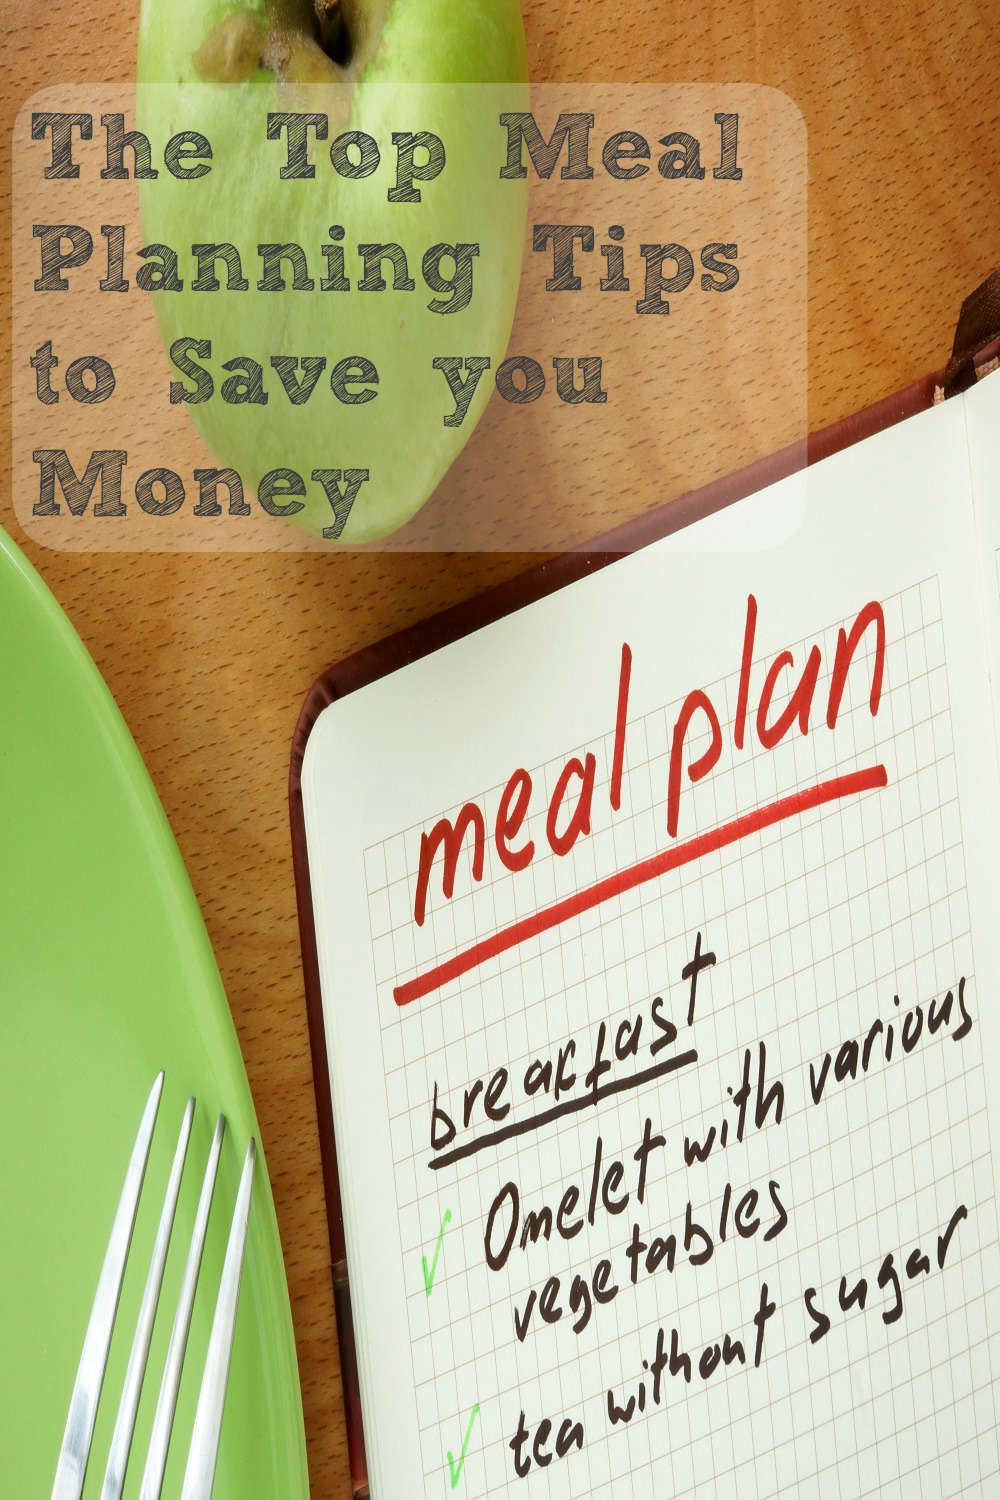 Meal planning is one of the easiest ways you can save money at home. Here are my Top Meal Planning Tips To Save You Money! - abccreativelearning.com